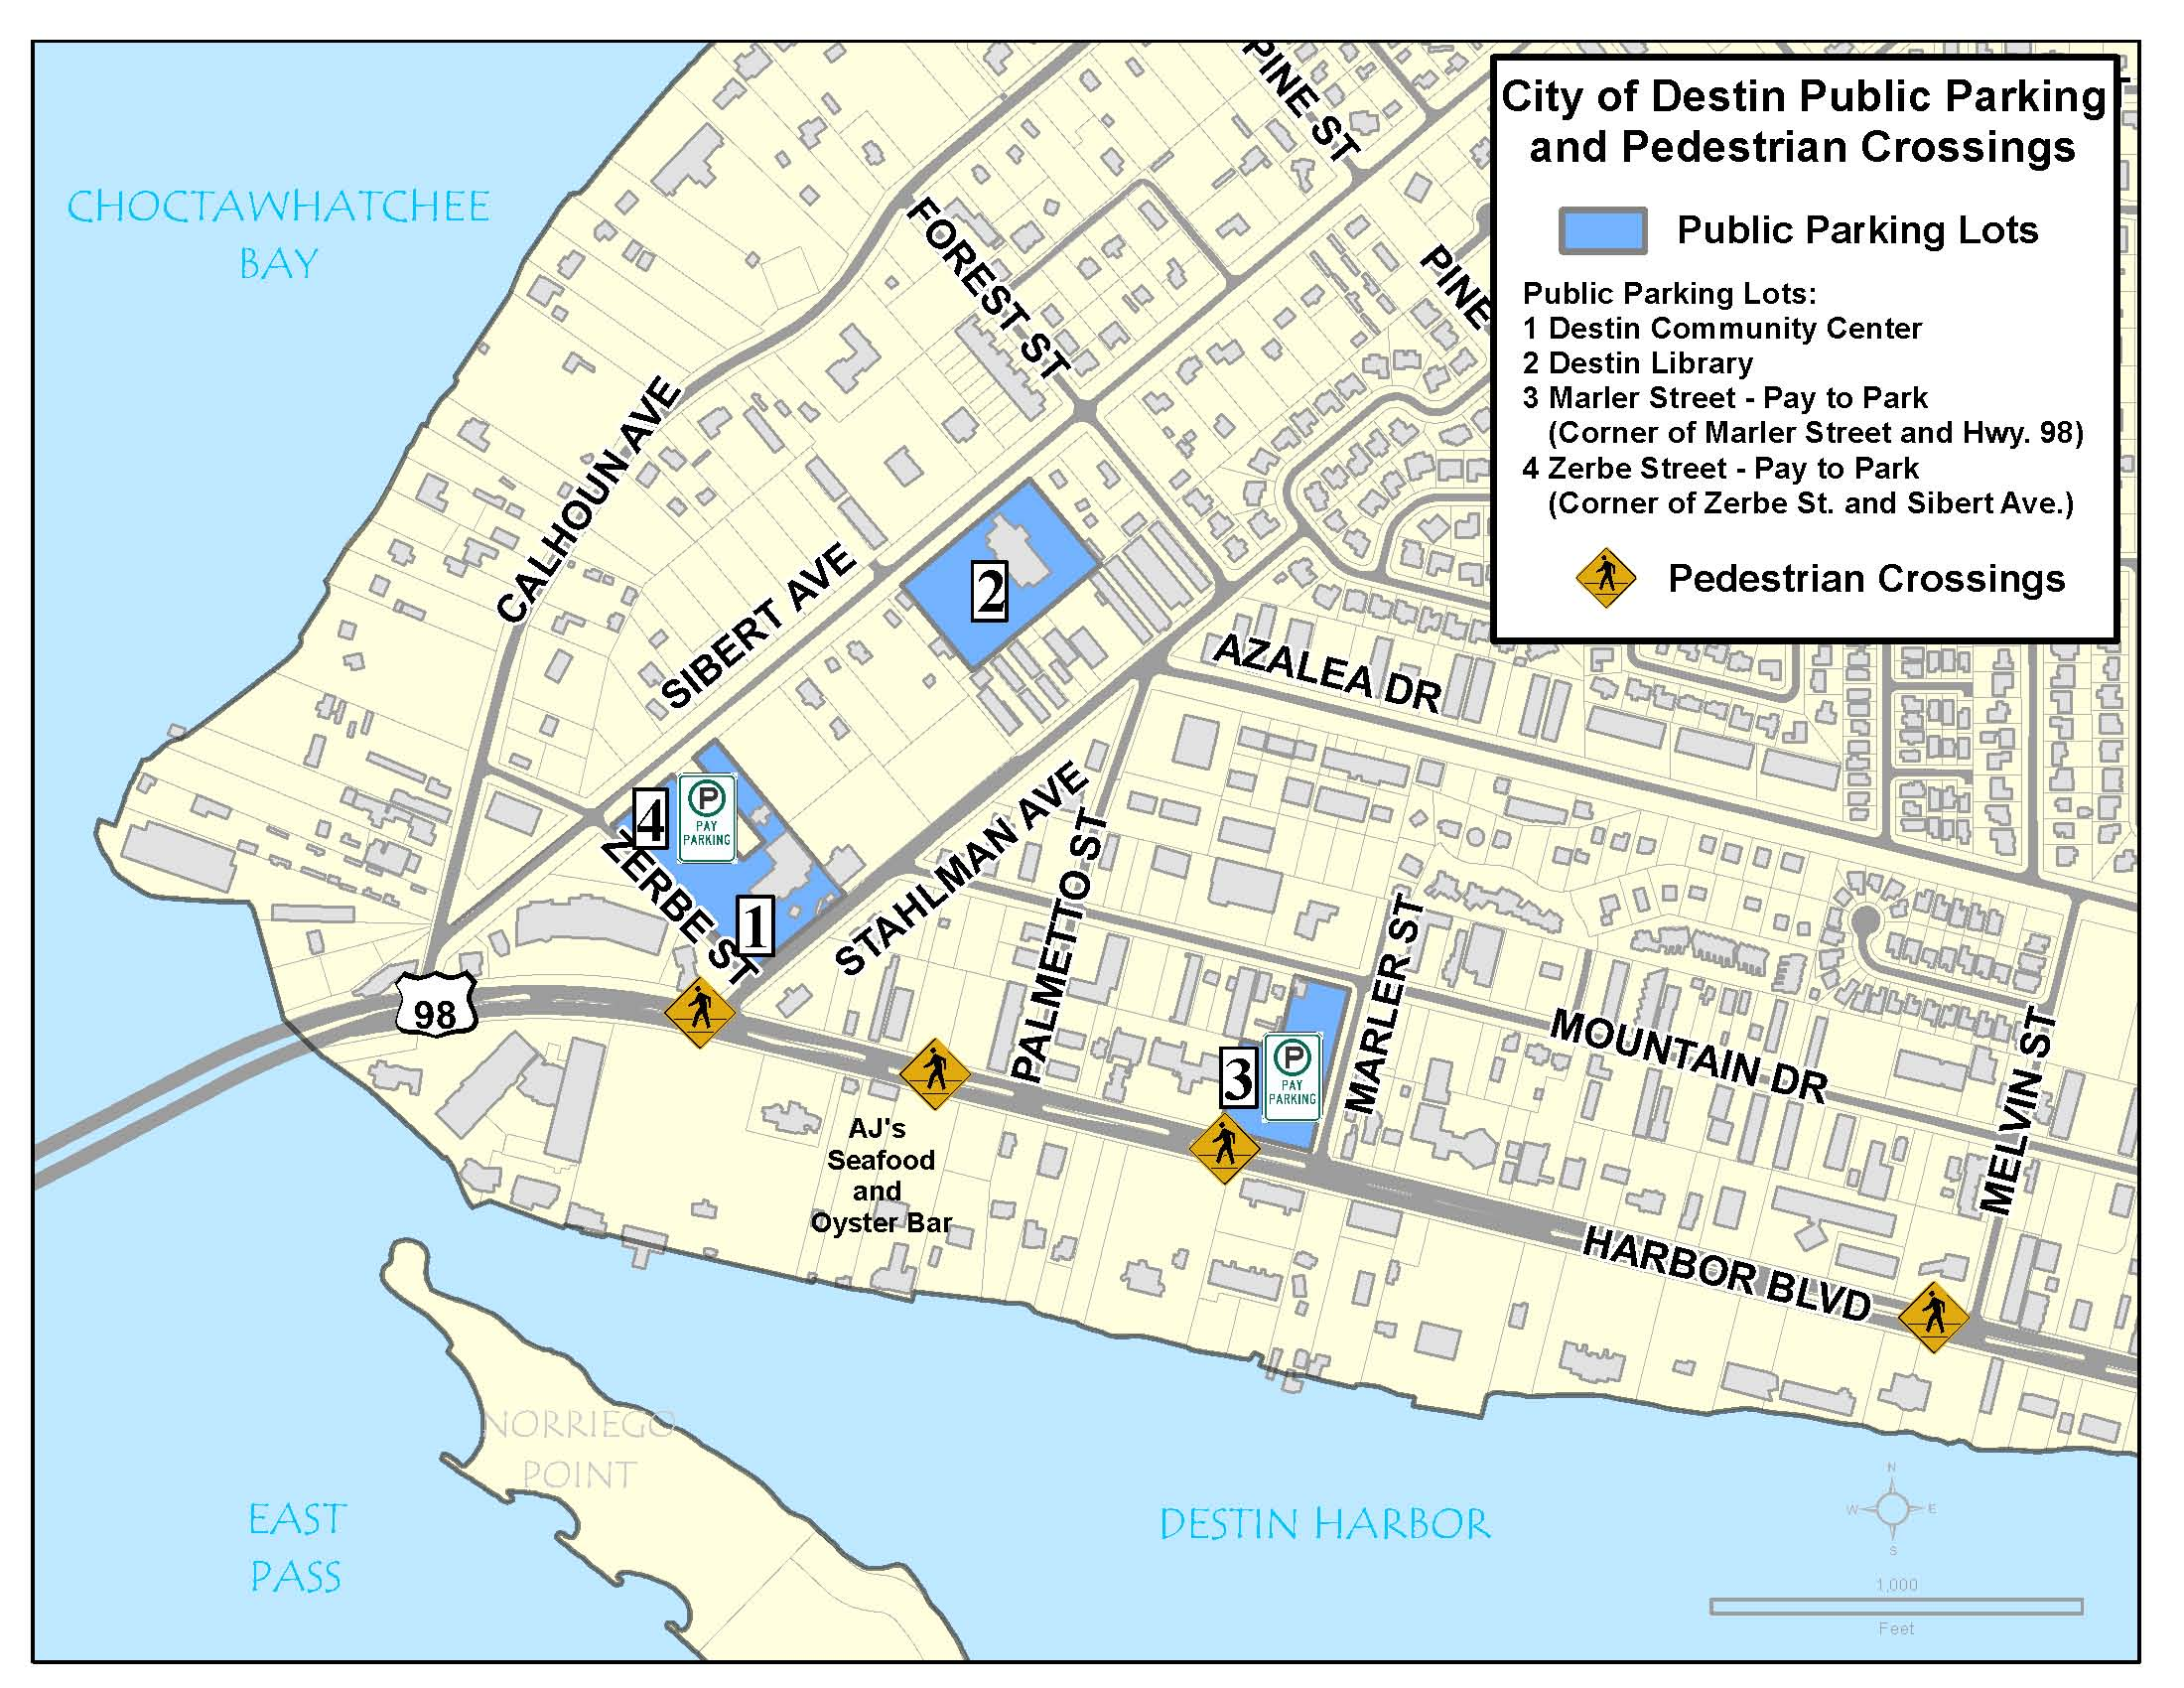 Destin Harbor District Parking | Destin, FL - Official Website